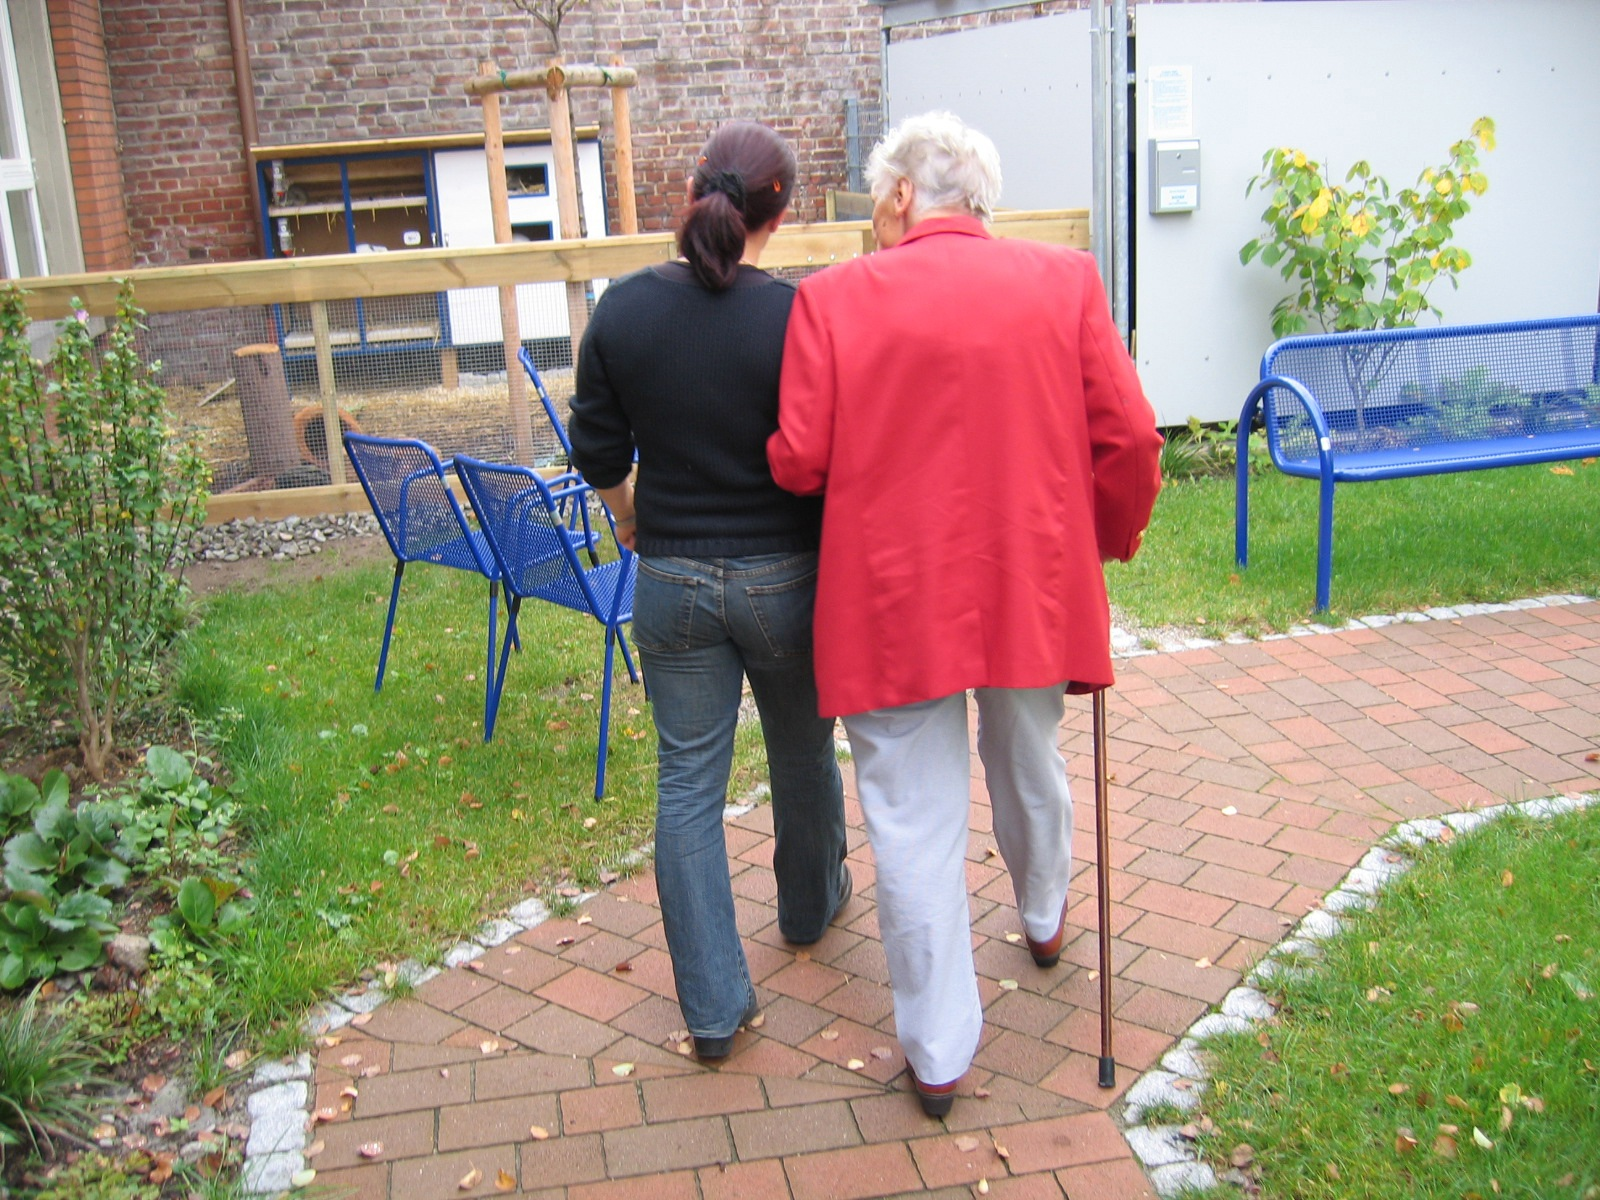 Read more about Caregiver Support Program